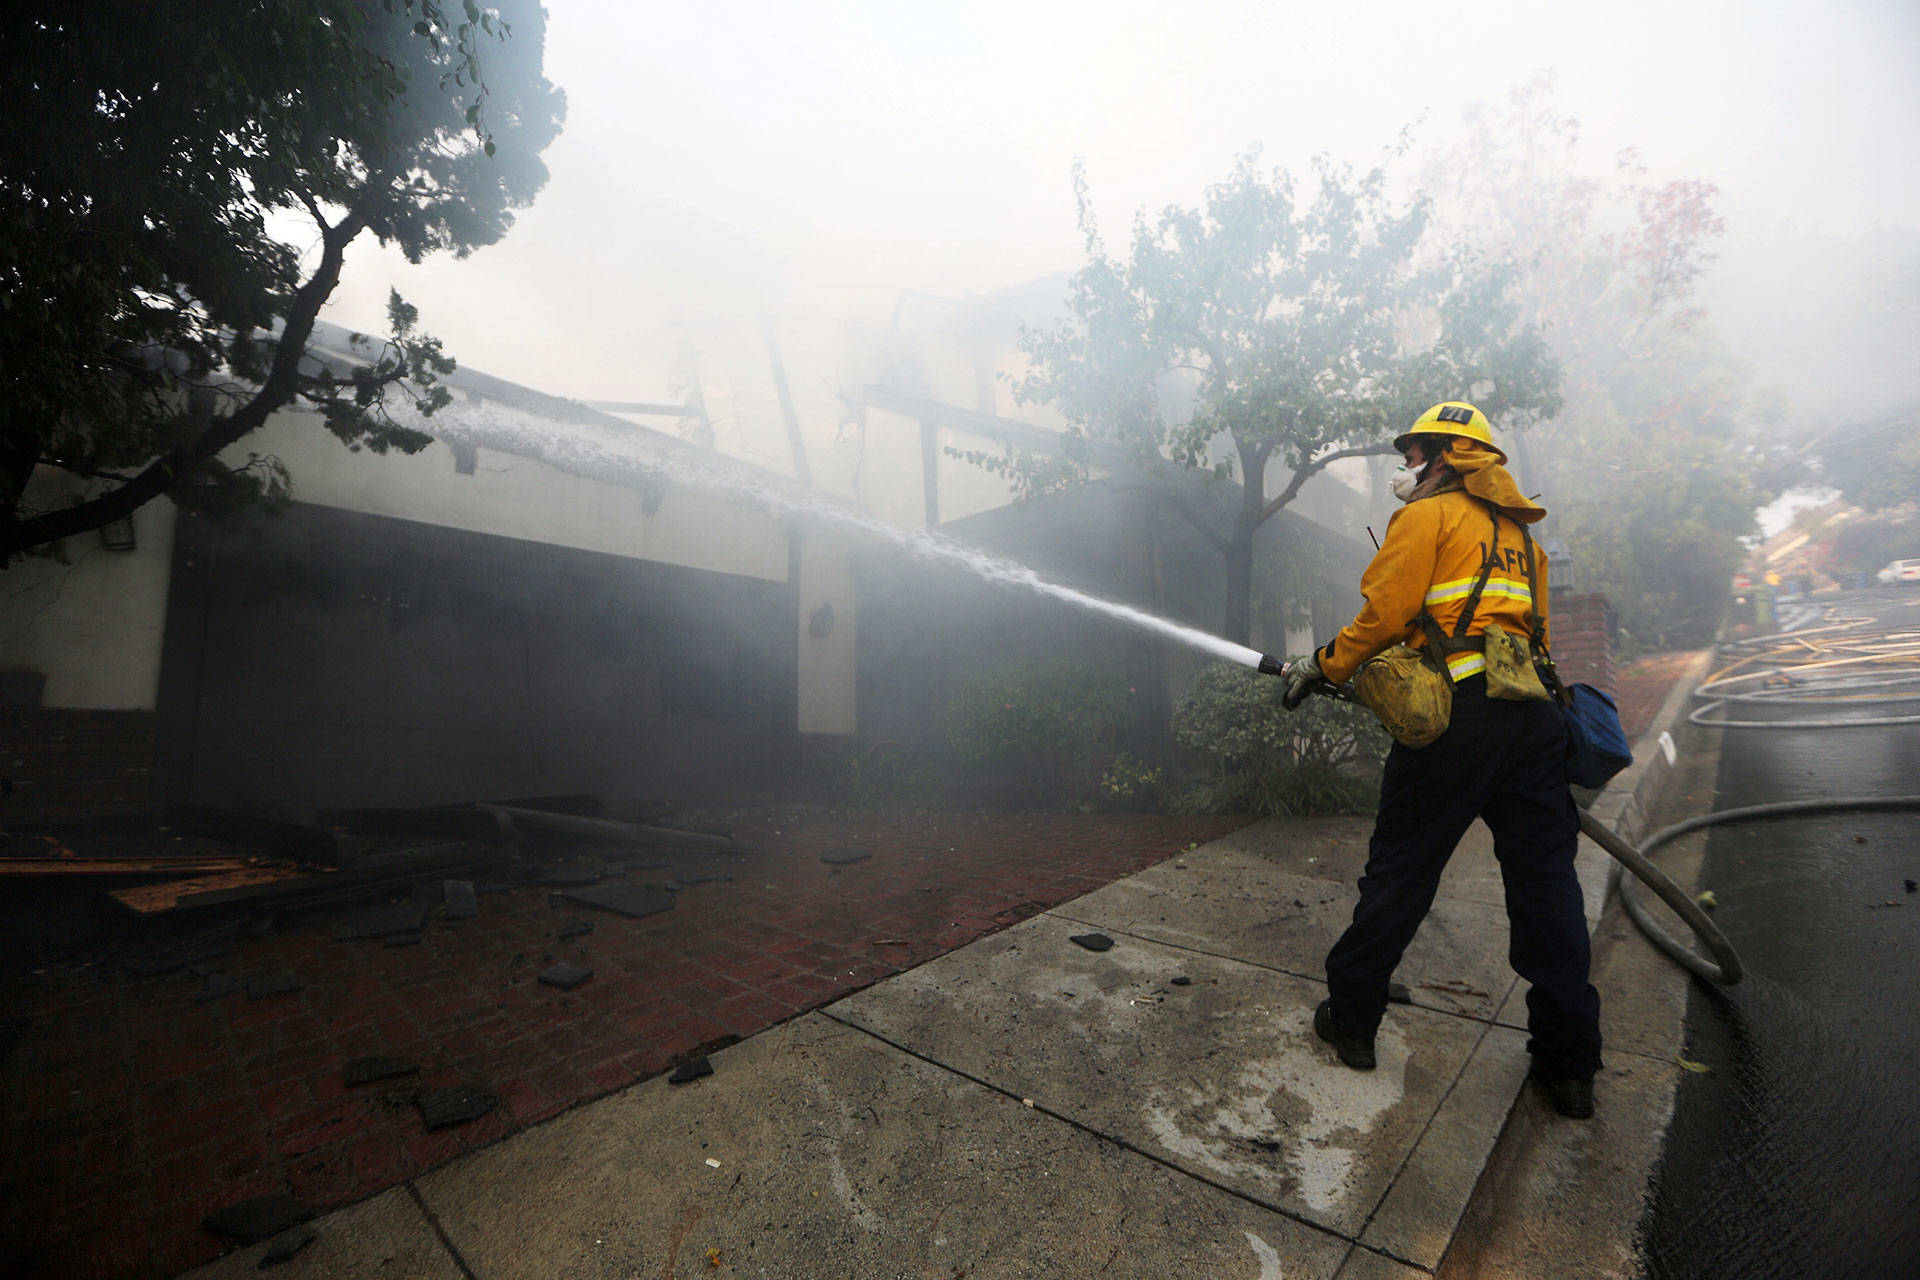 A firefighter sprays water on a burning home in the wealthy Bel Air neighborhood during the Skirball Fire on Dec. 6, 2017. Mario Tama/Getty Images